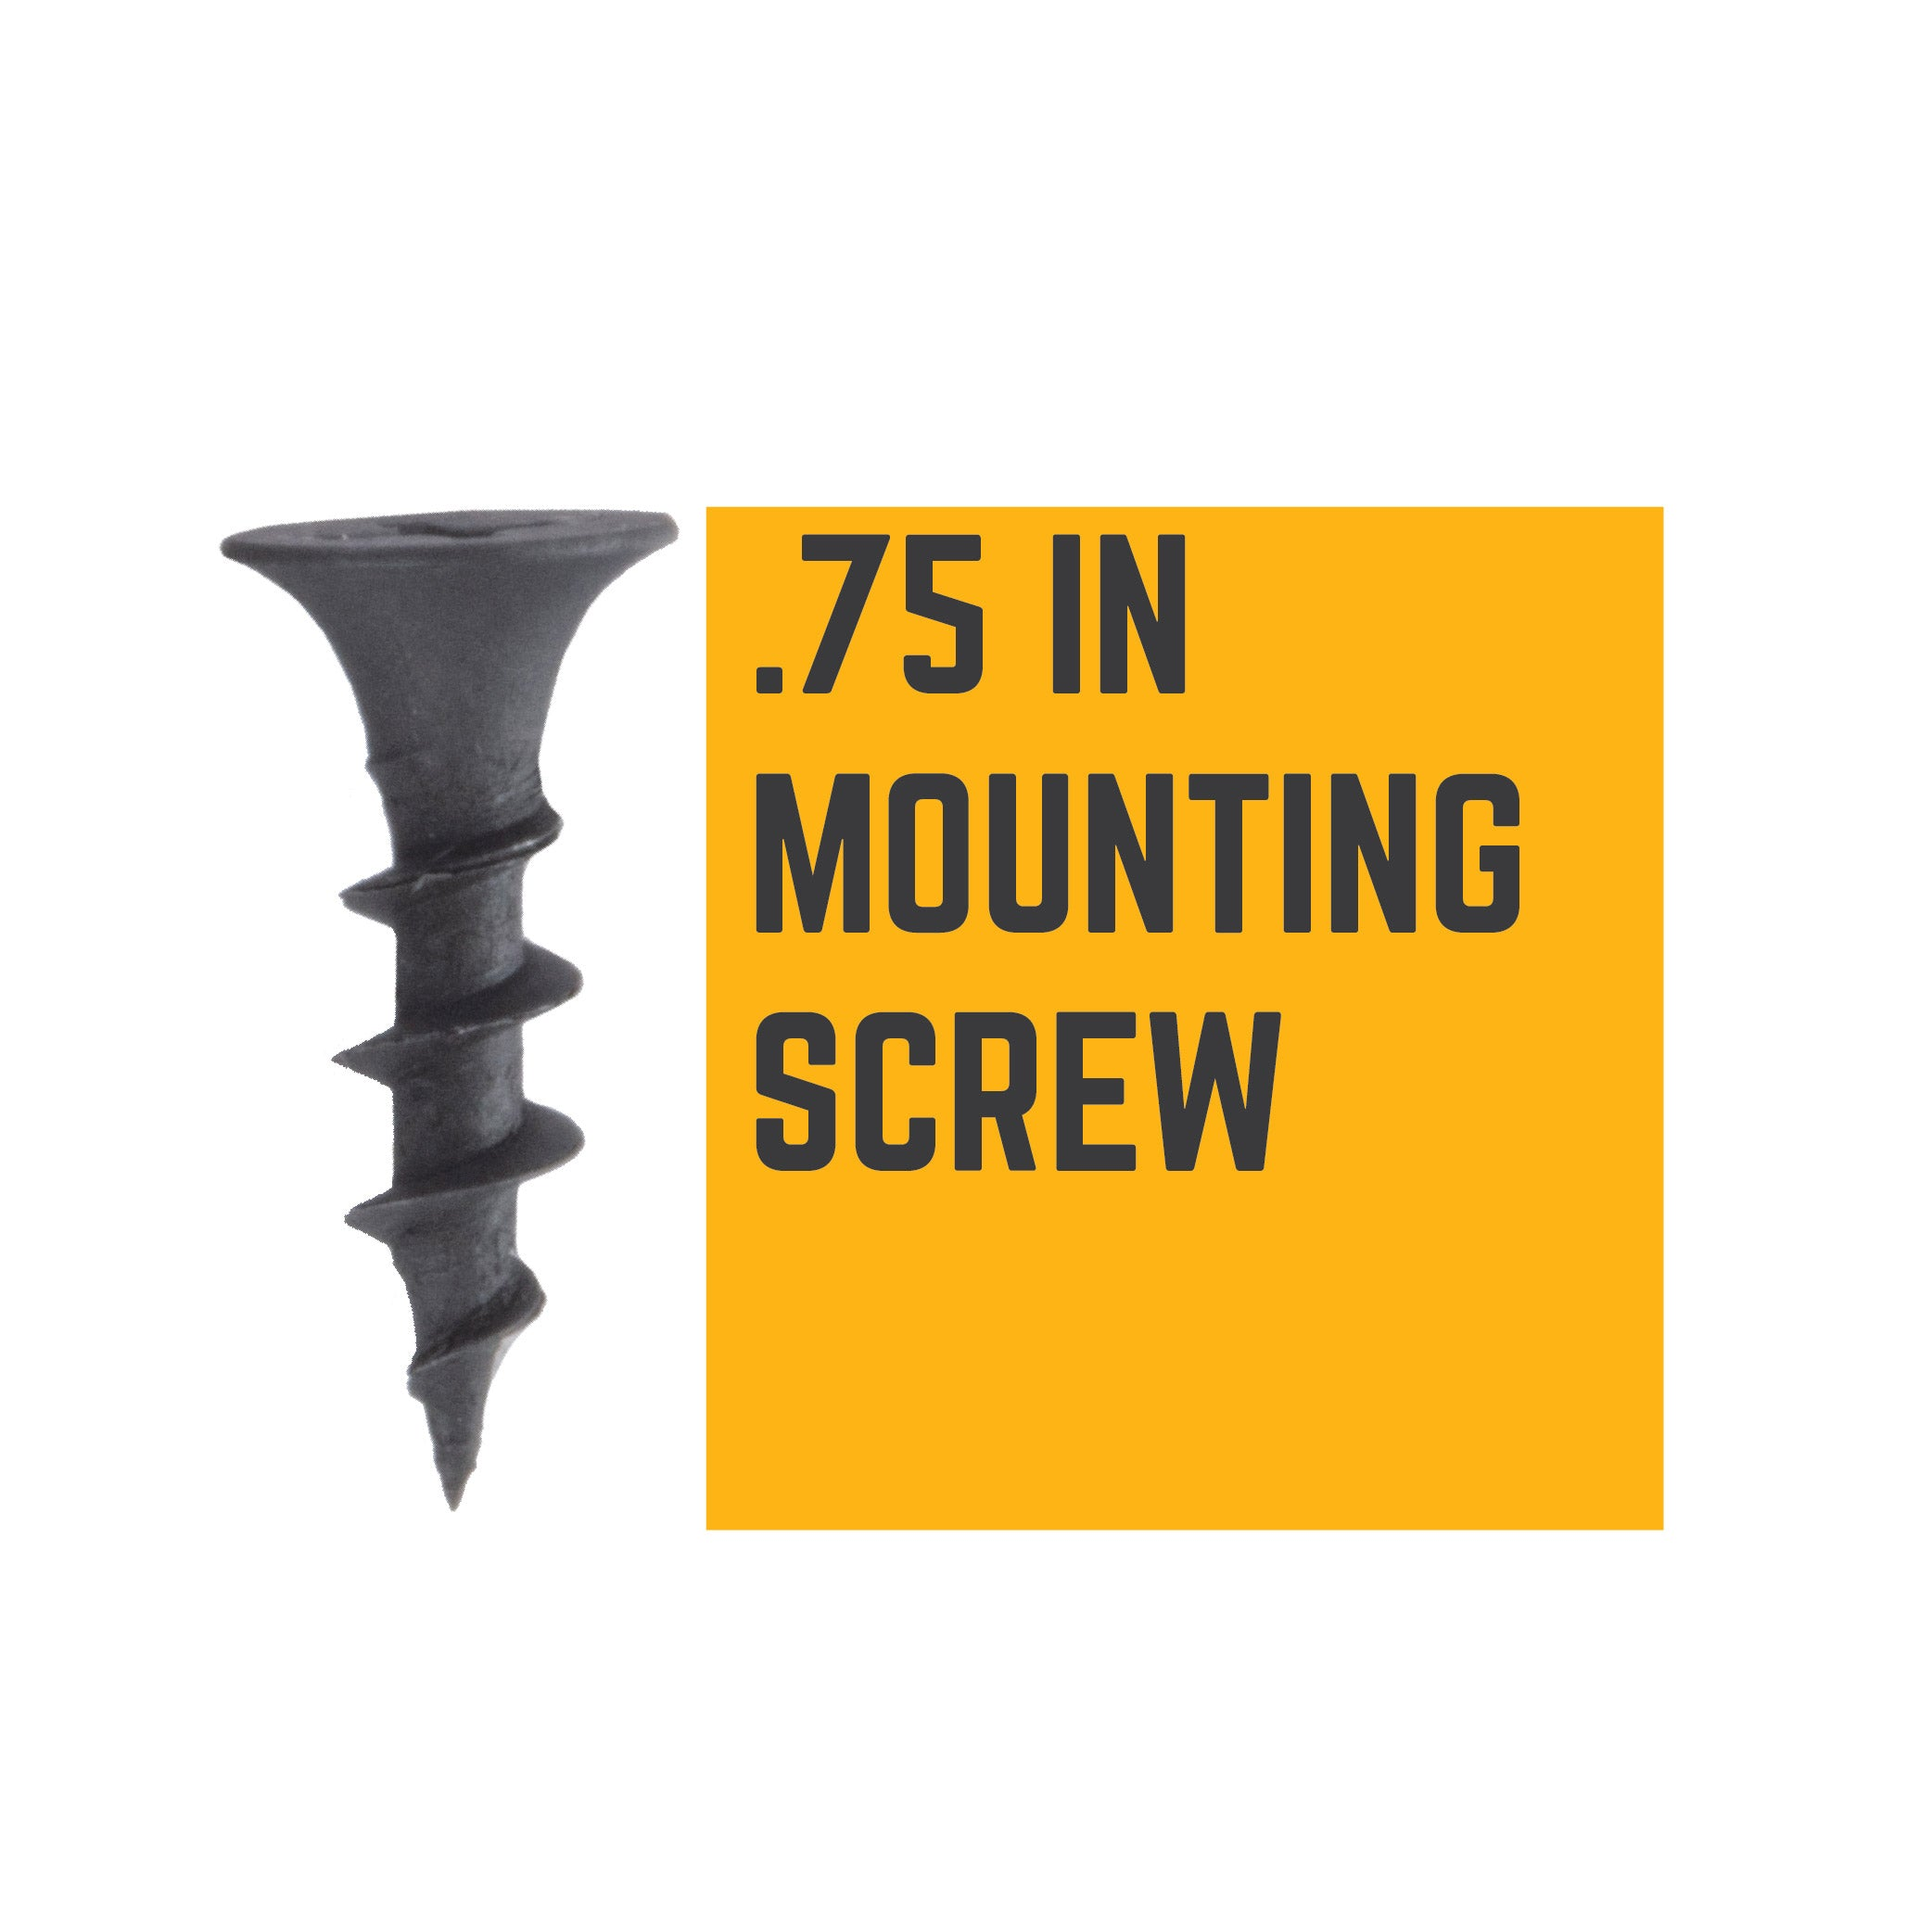 3/4 IN Shelf Mounting Screws - Pipe Decor